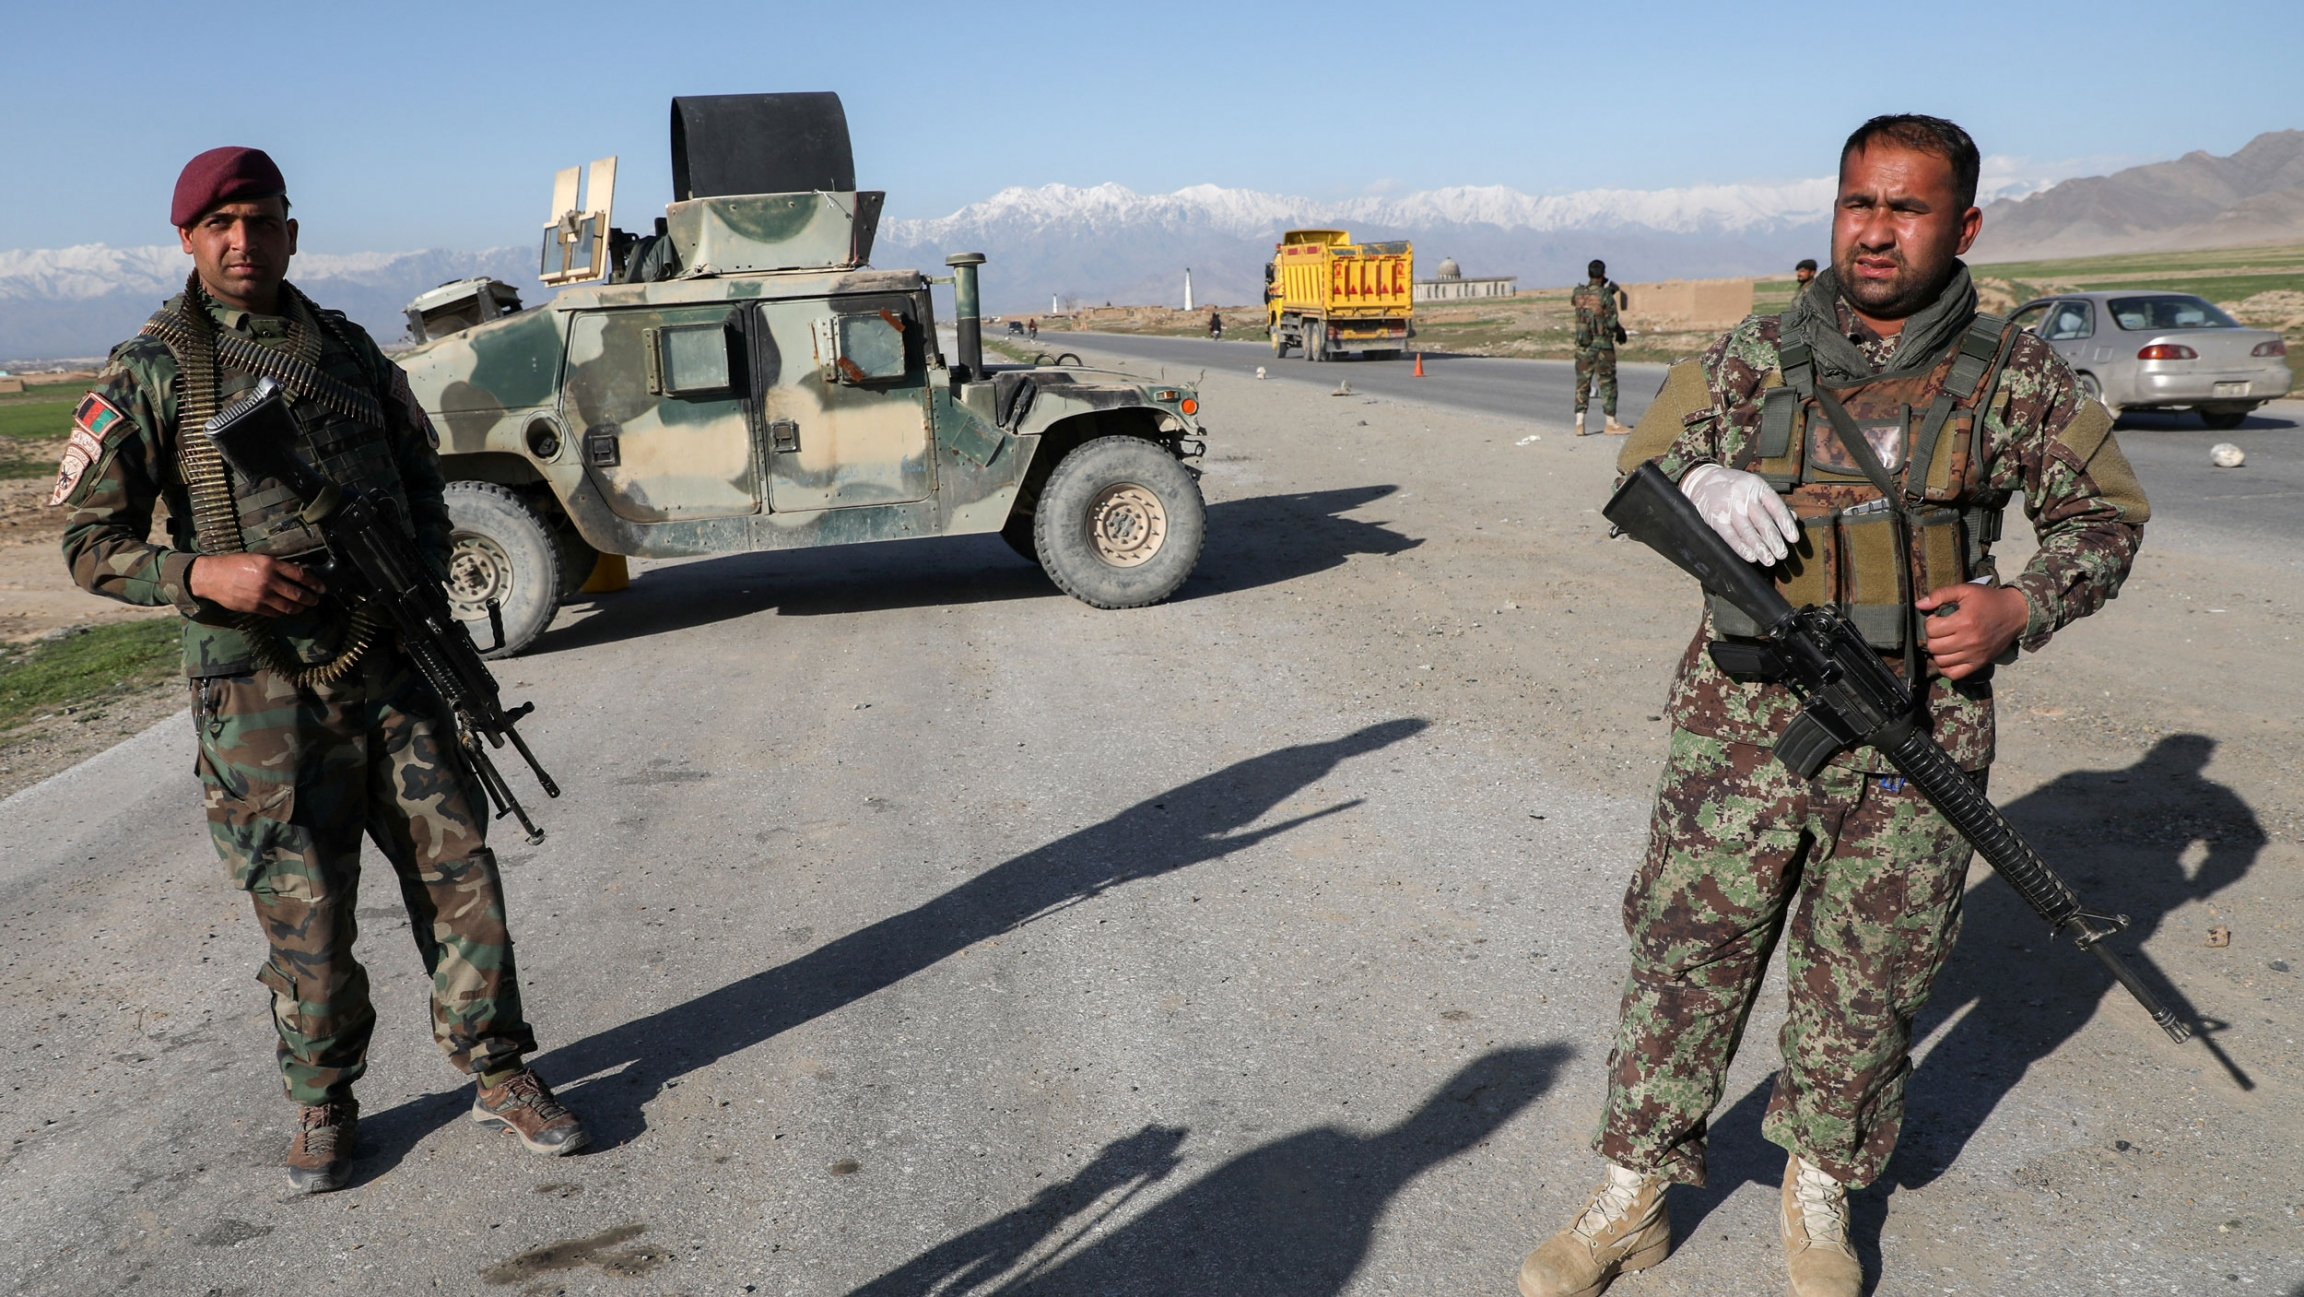 Two soldiers are shown standing near a road and holding weapons with an armored vehicle parked behind them.